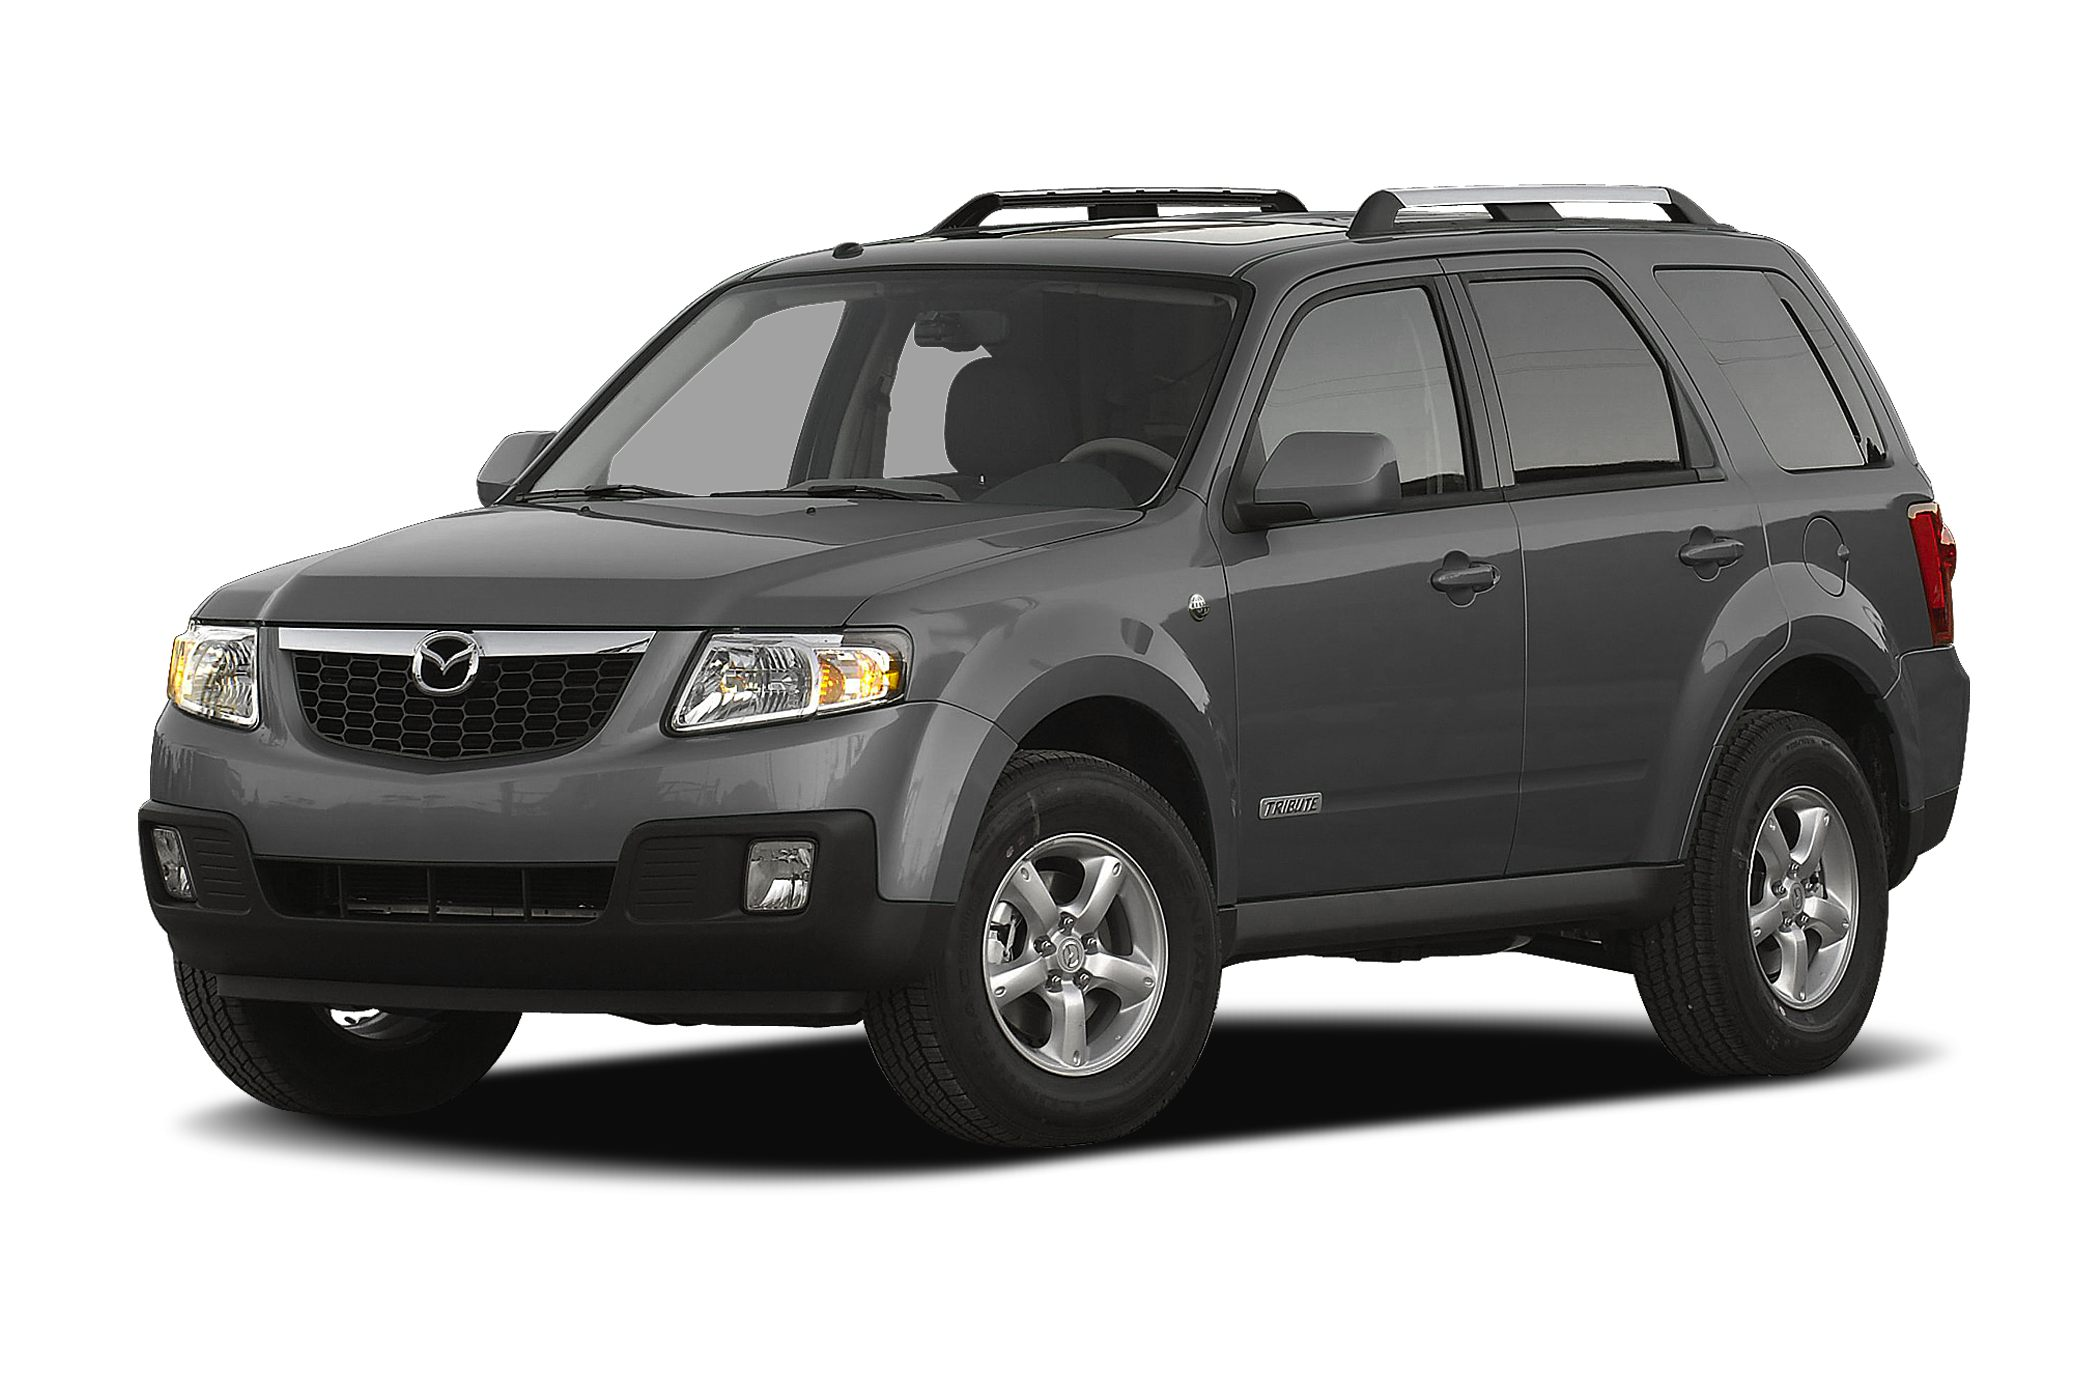 2008 Mazda Tribute Hybrid